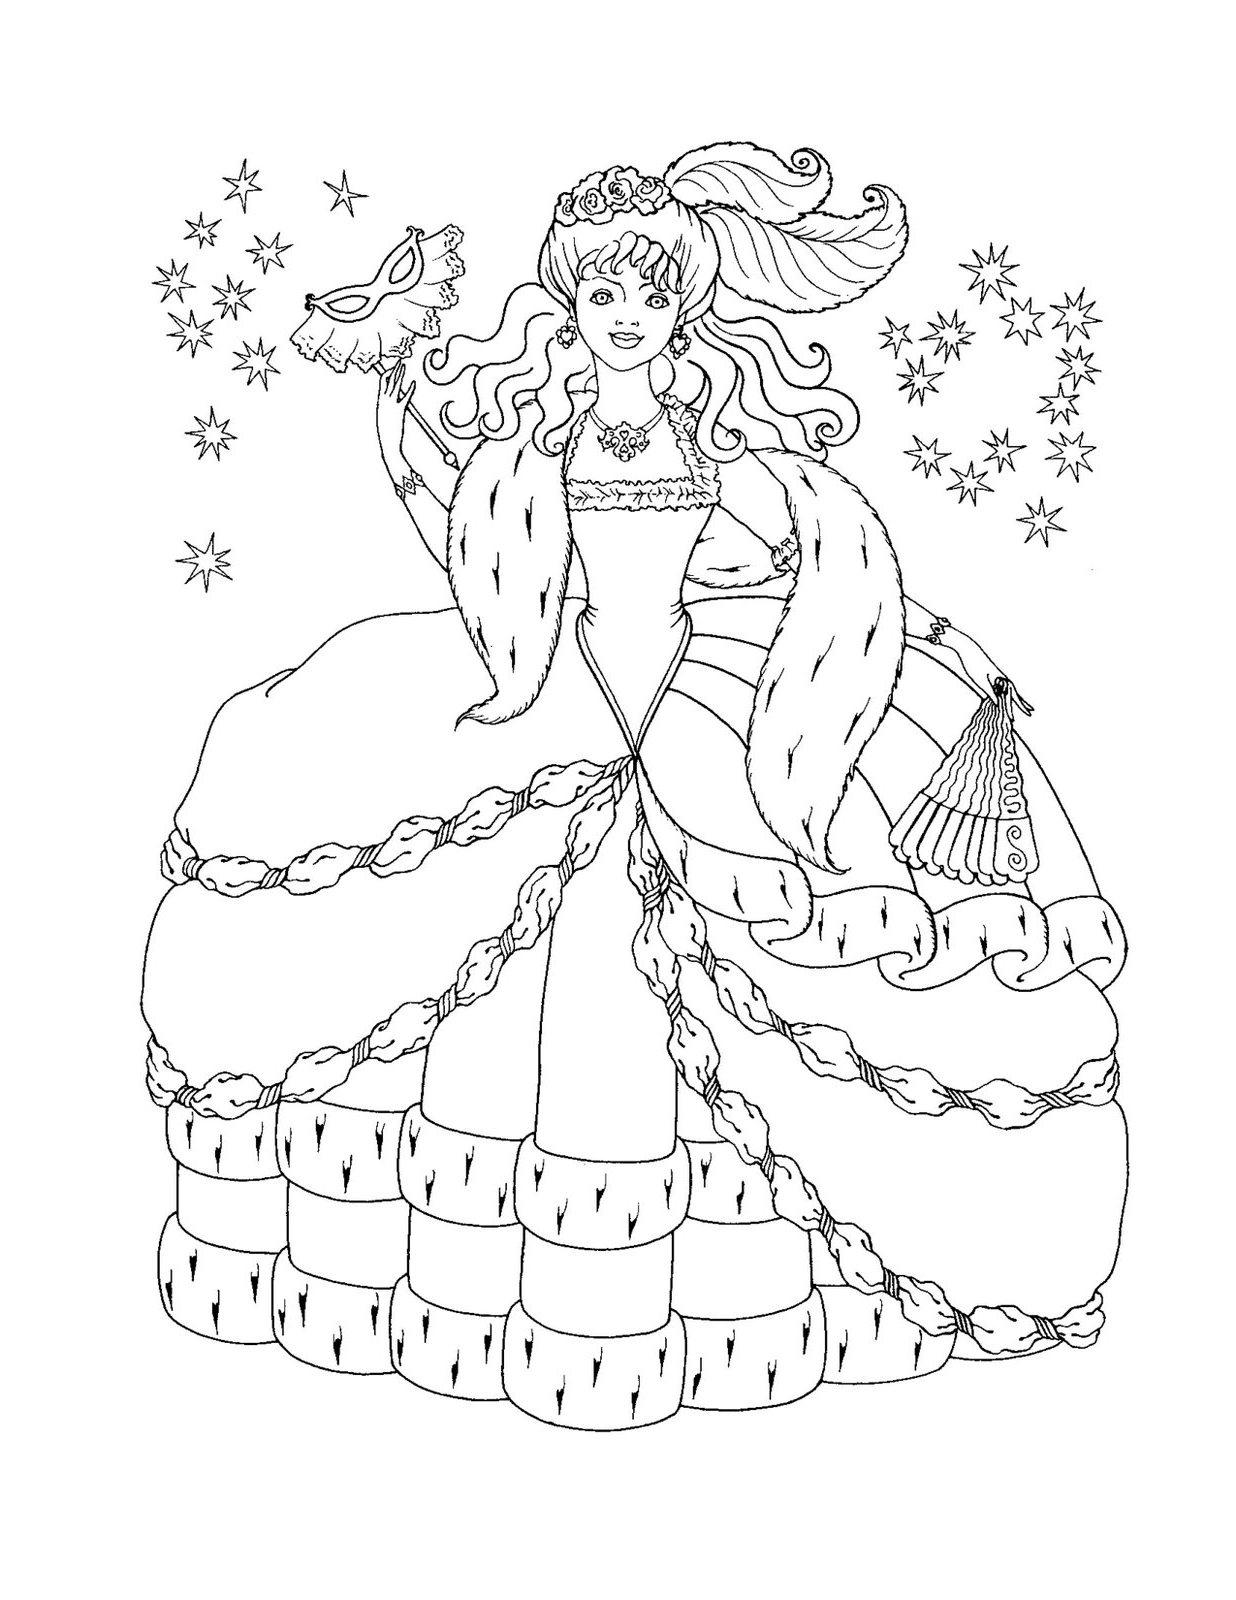 Free Printable Disney Princess Coloring Pages For Kids Disney Princess Coloring Pages For Free Coloring Sheets